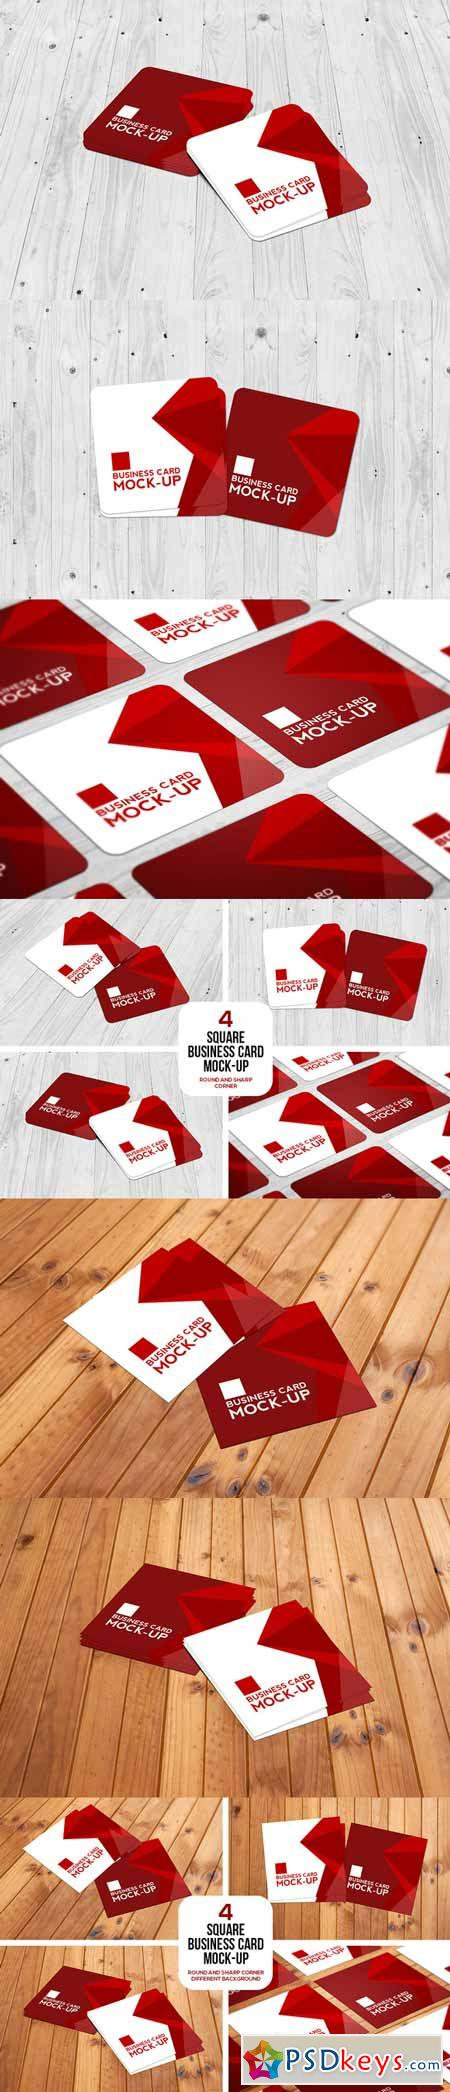 Square Business Card Mockup Set 594371